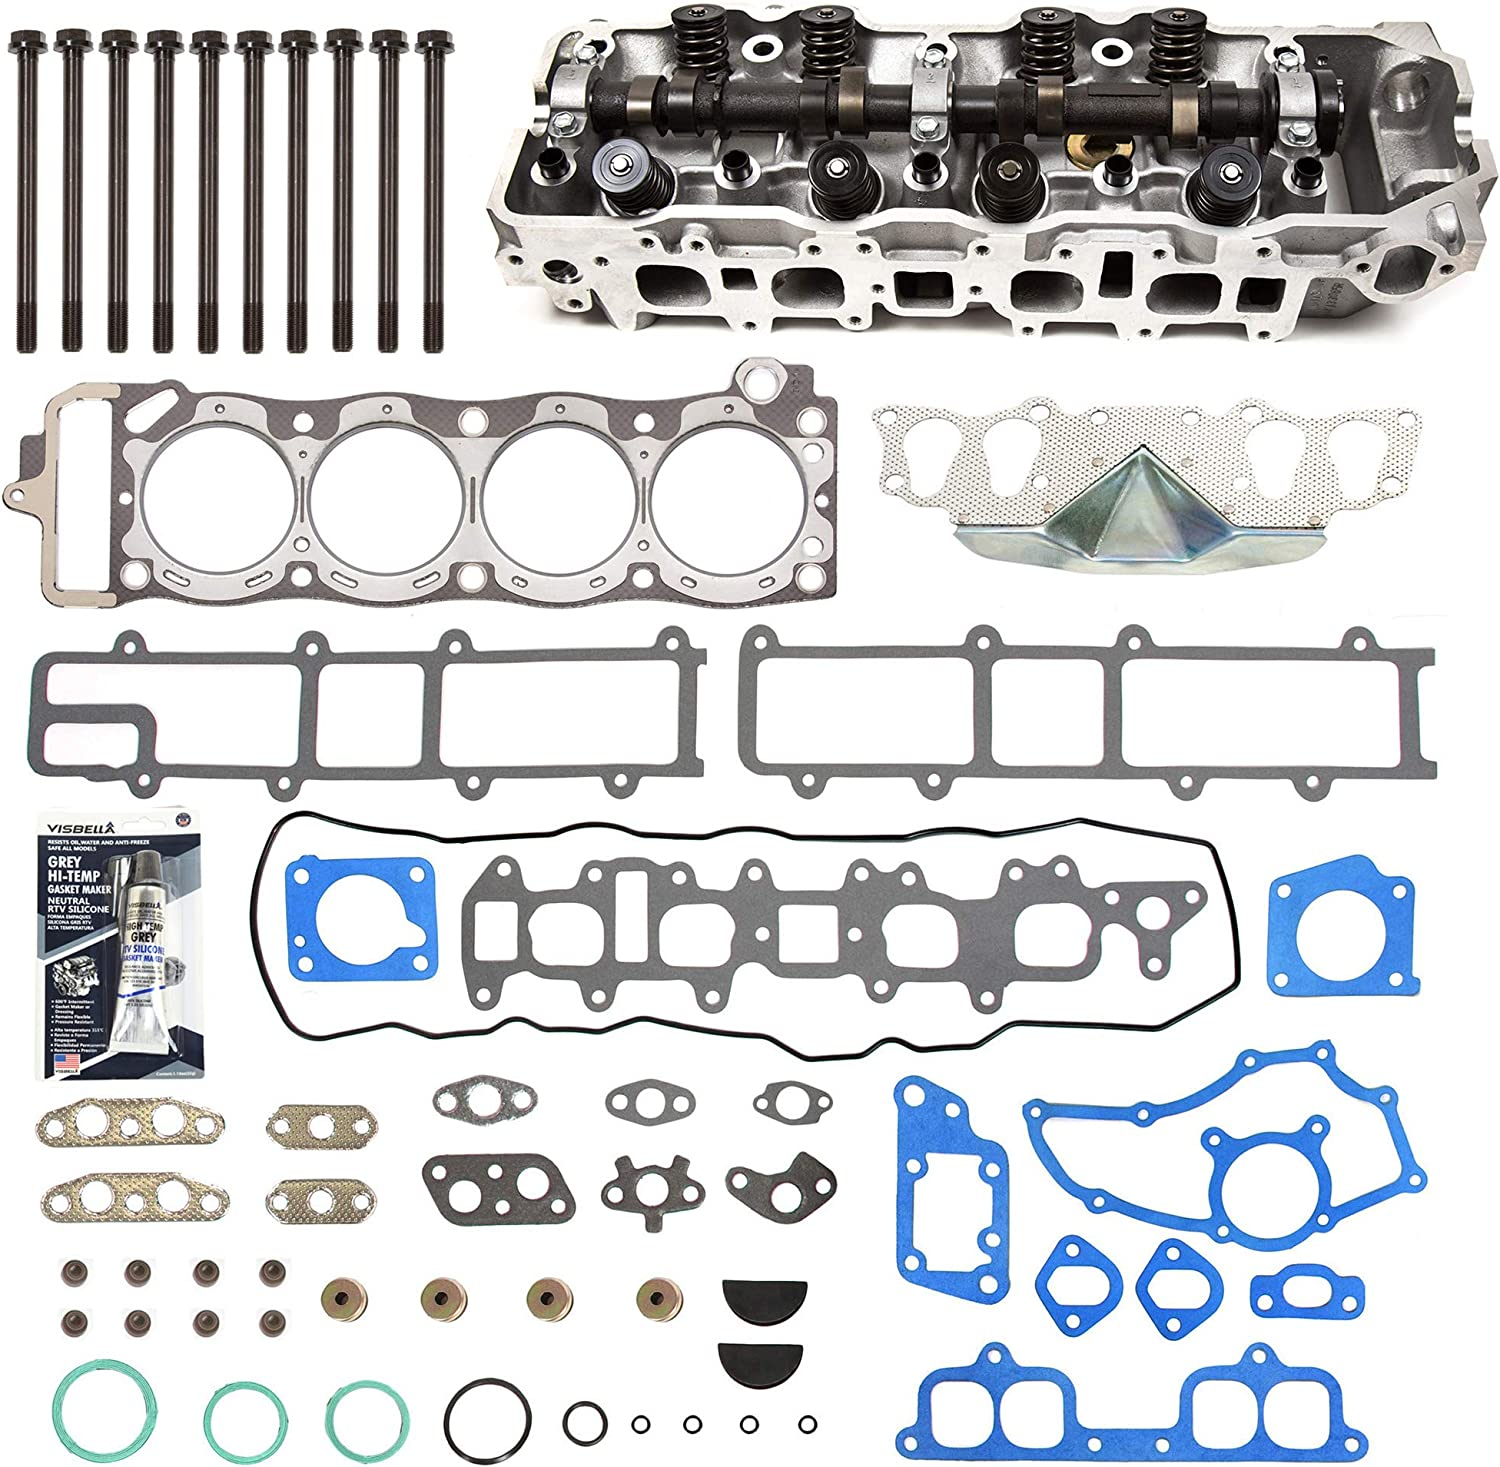 Evergreen CHHSHB2000-3 Gorgeous Complete Cylinder Set He Gasket Head Clearance SALE Limited time